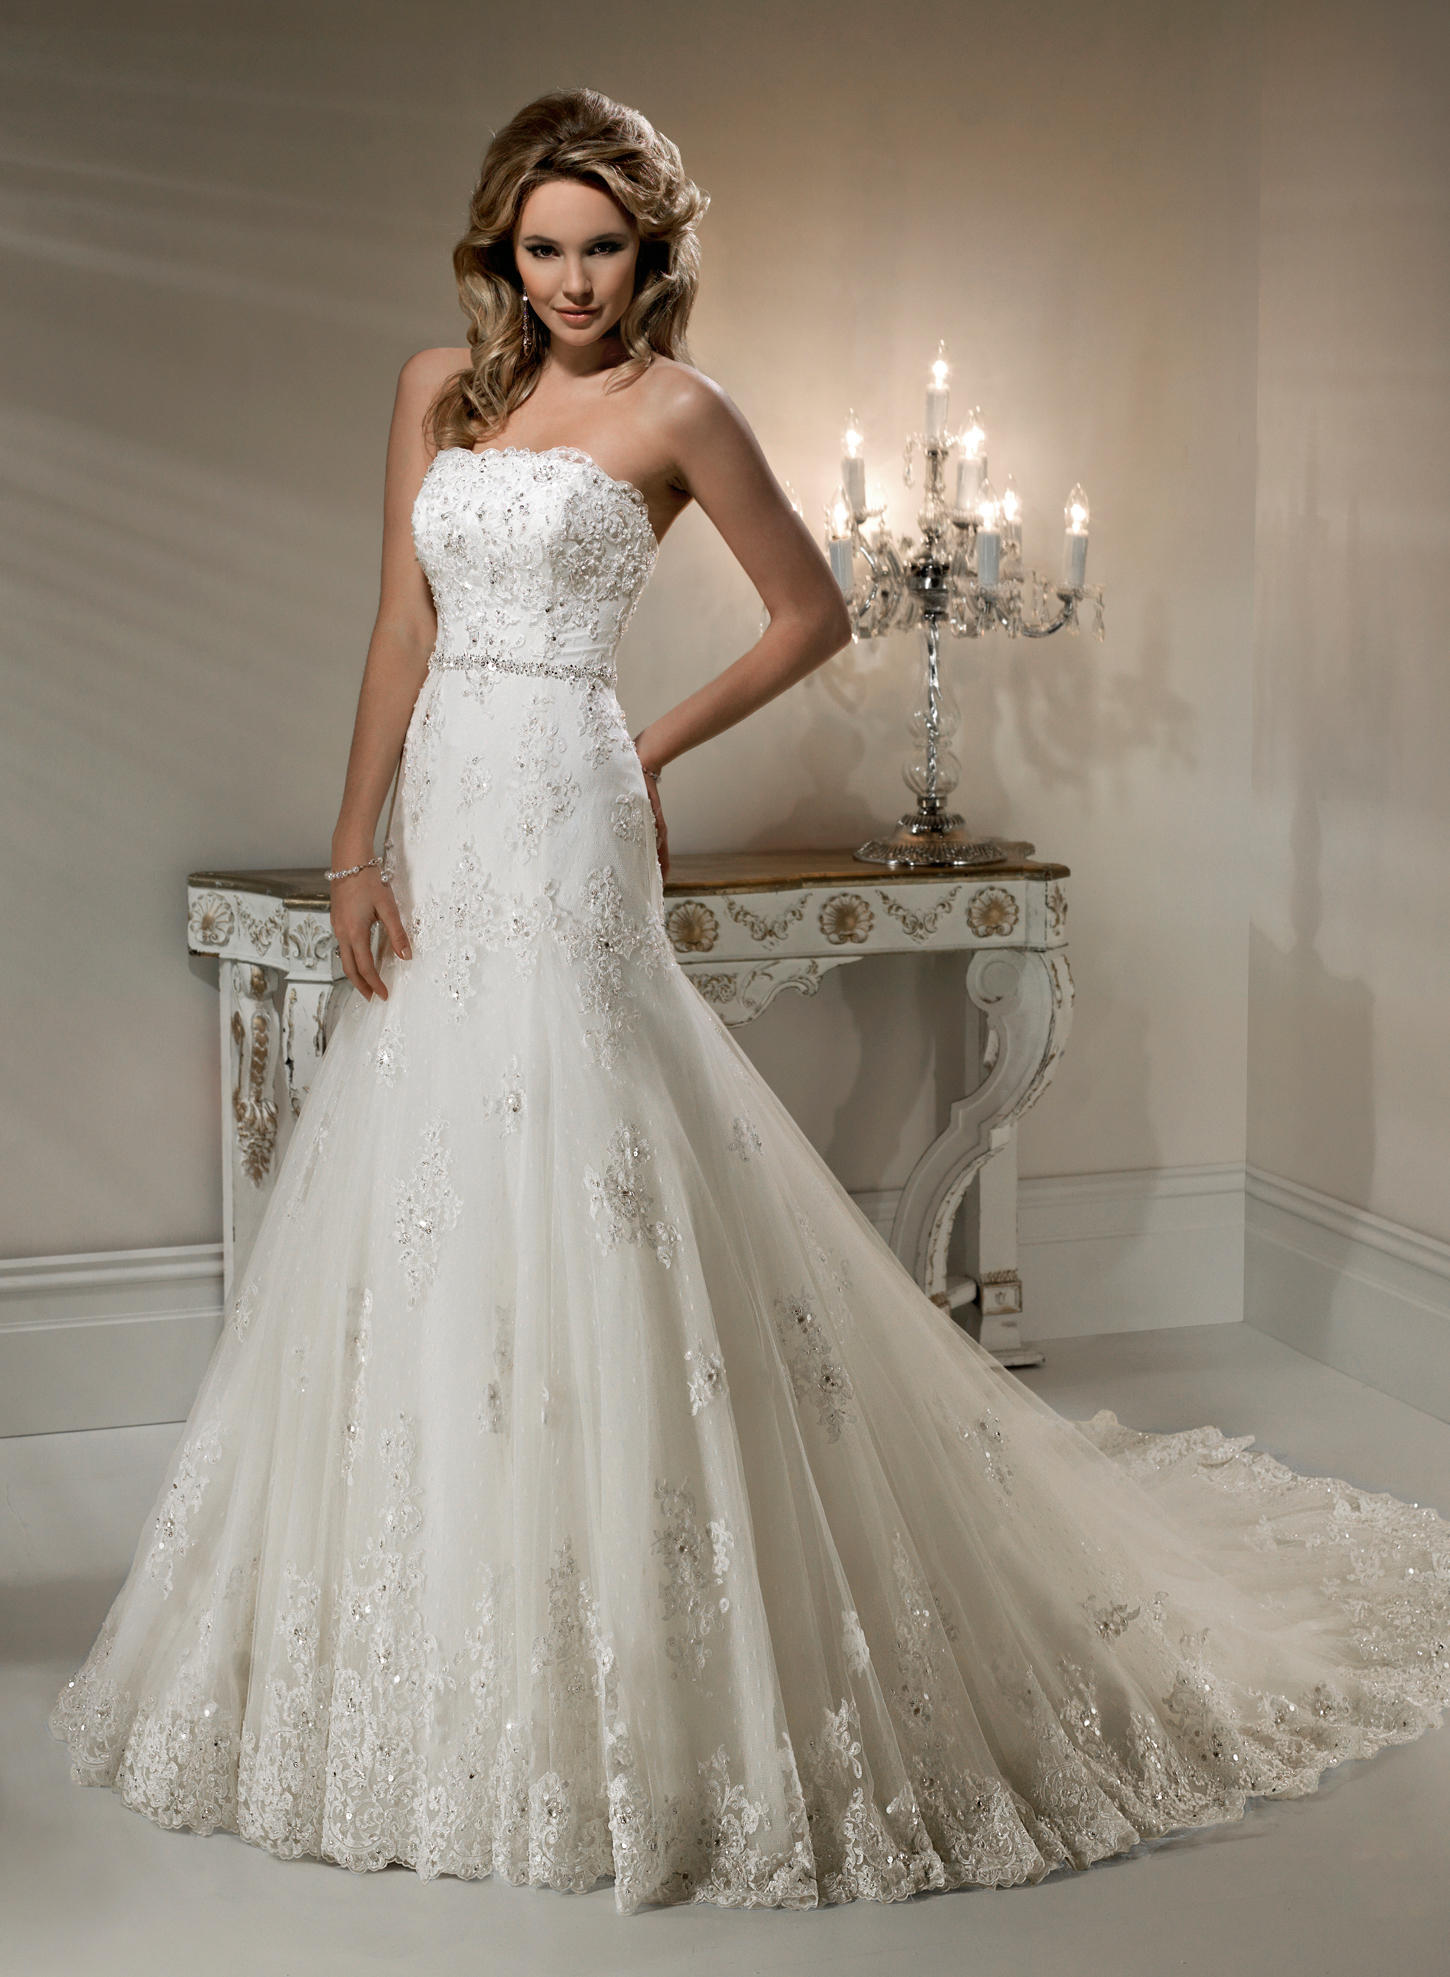 Gown of absolute \'elegance & beauty\'   i spy a wedding